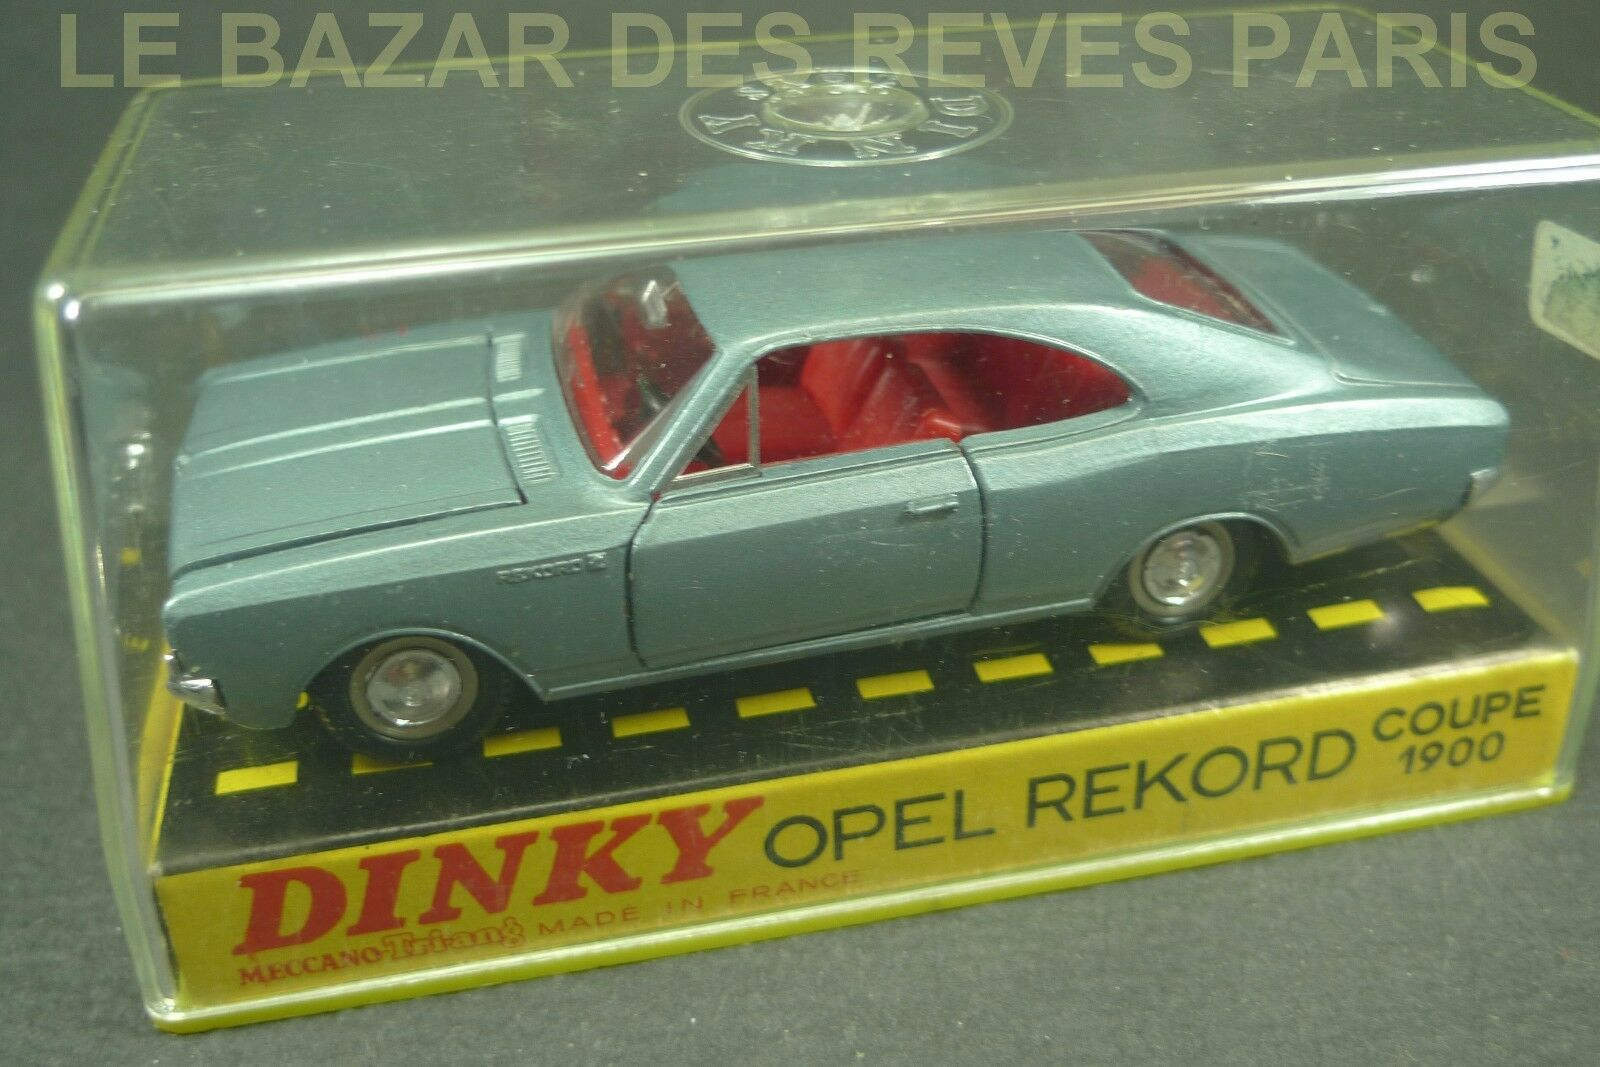 DINKY TOYS FRANCE. OPEL REKORD coupé 1900.+ Boite.  REF  1405.